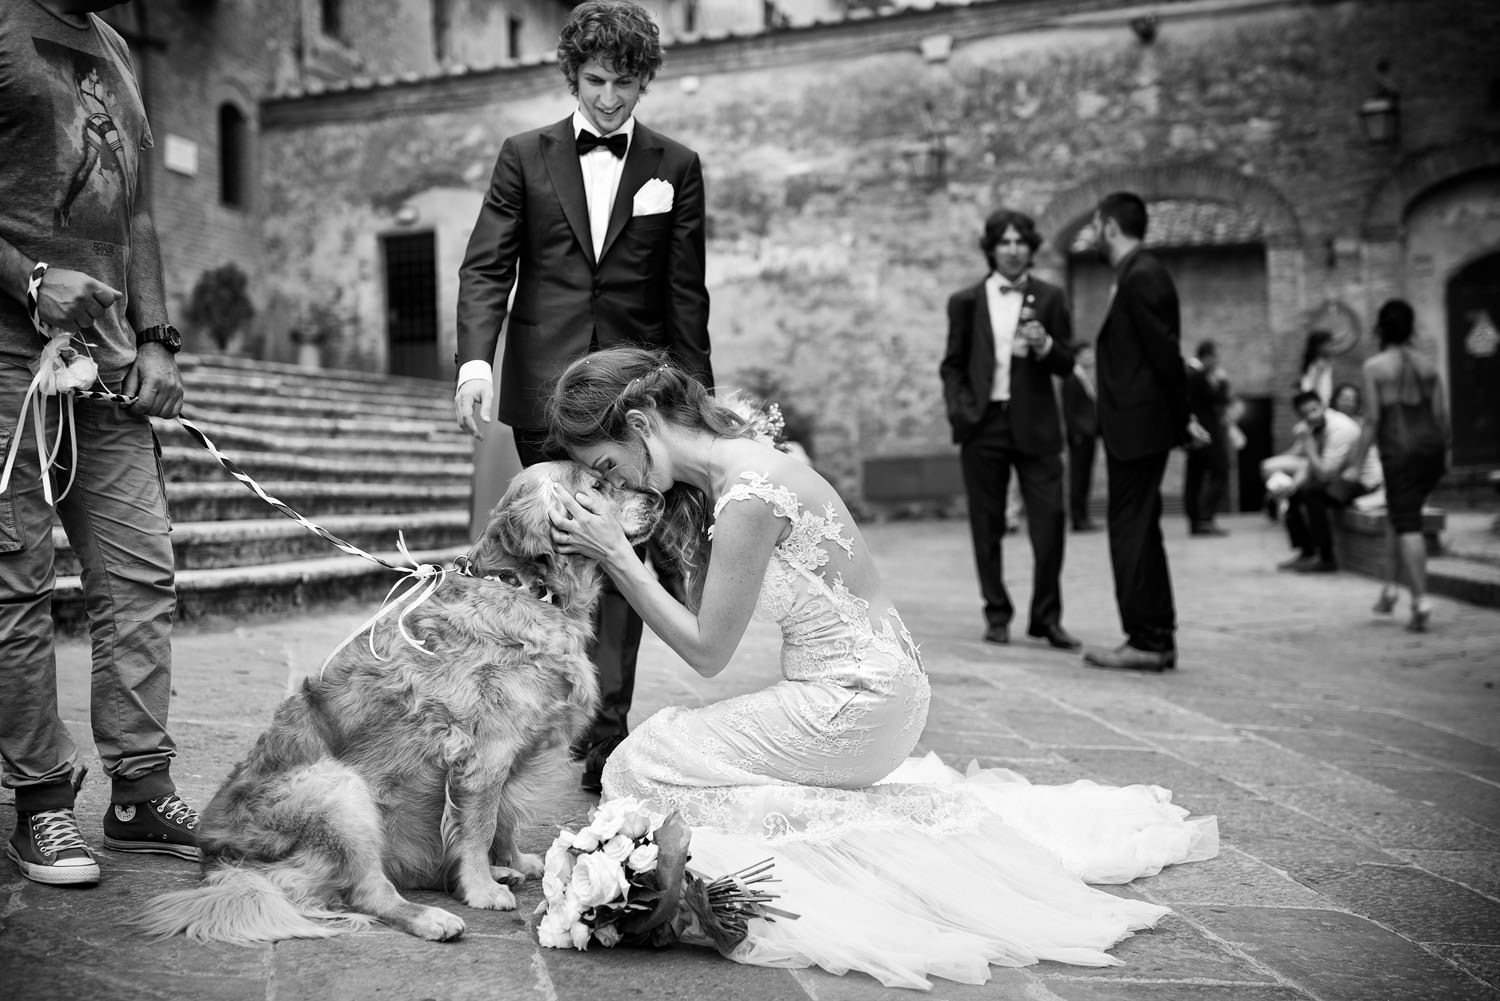 Amazing Dog at wedding. Golden retriever